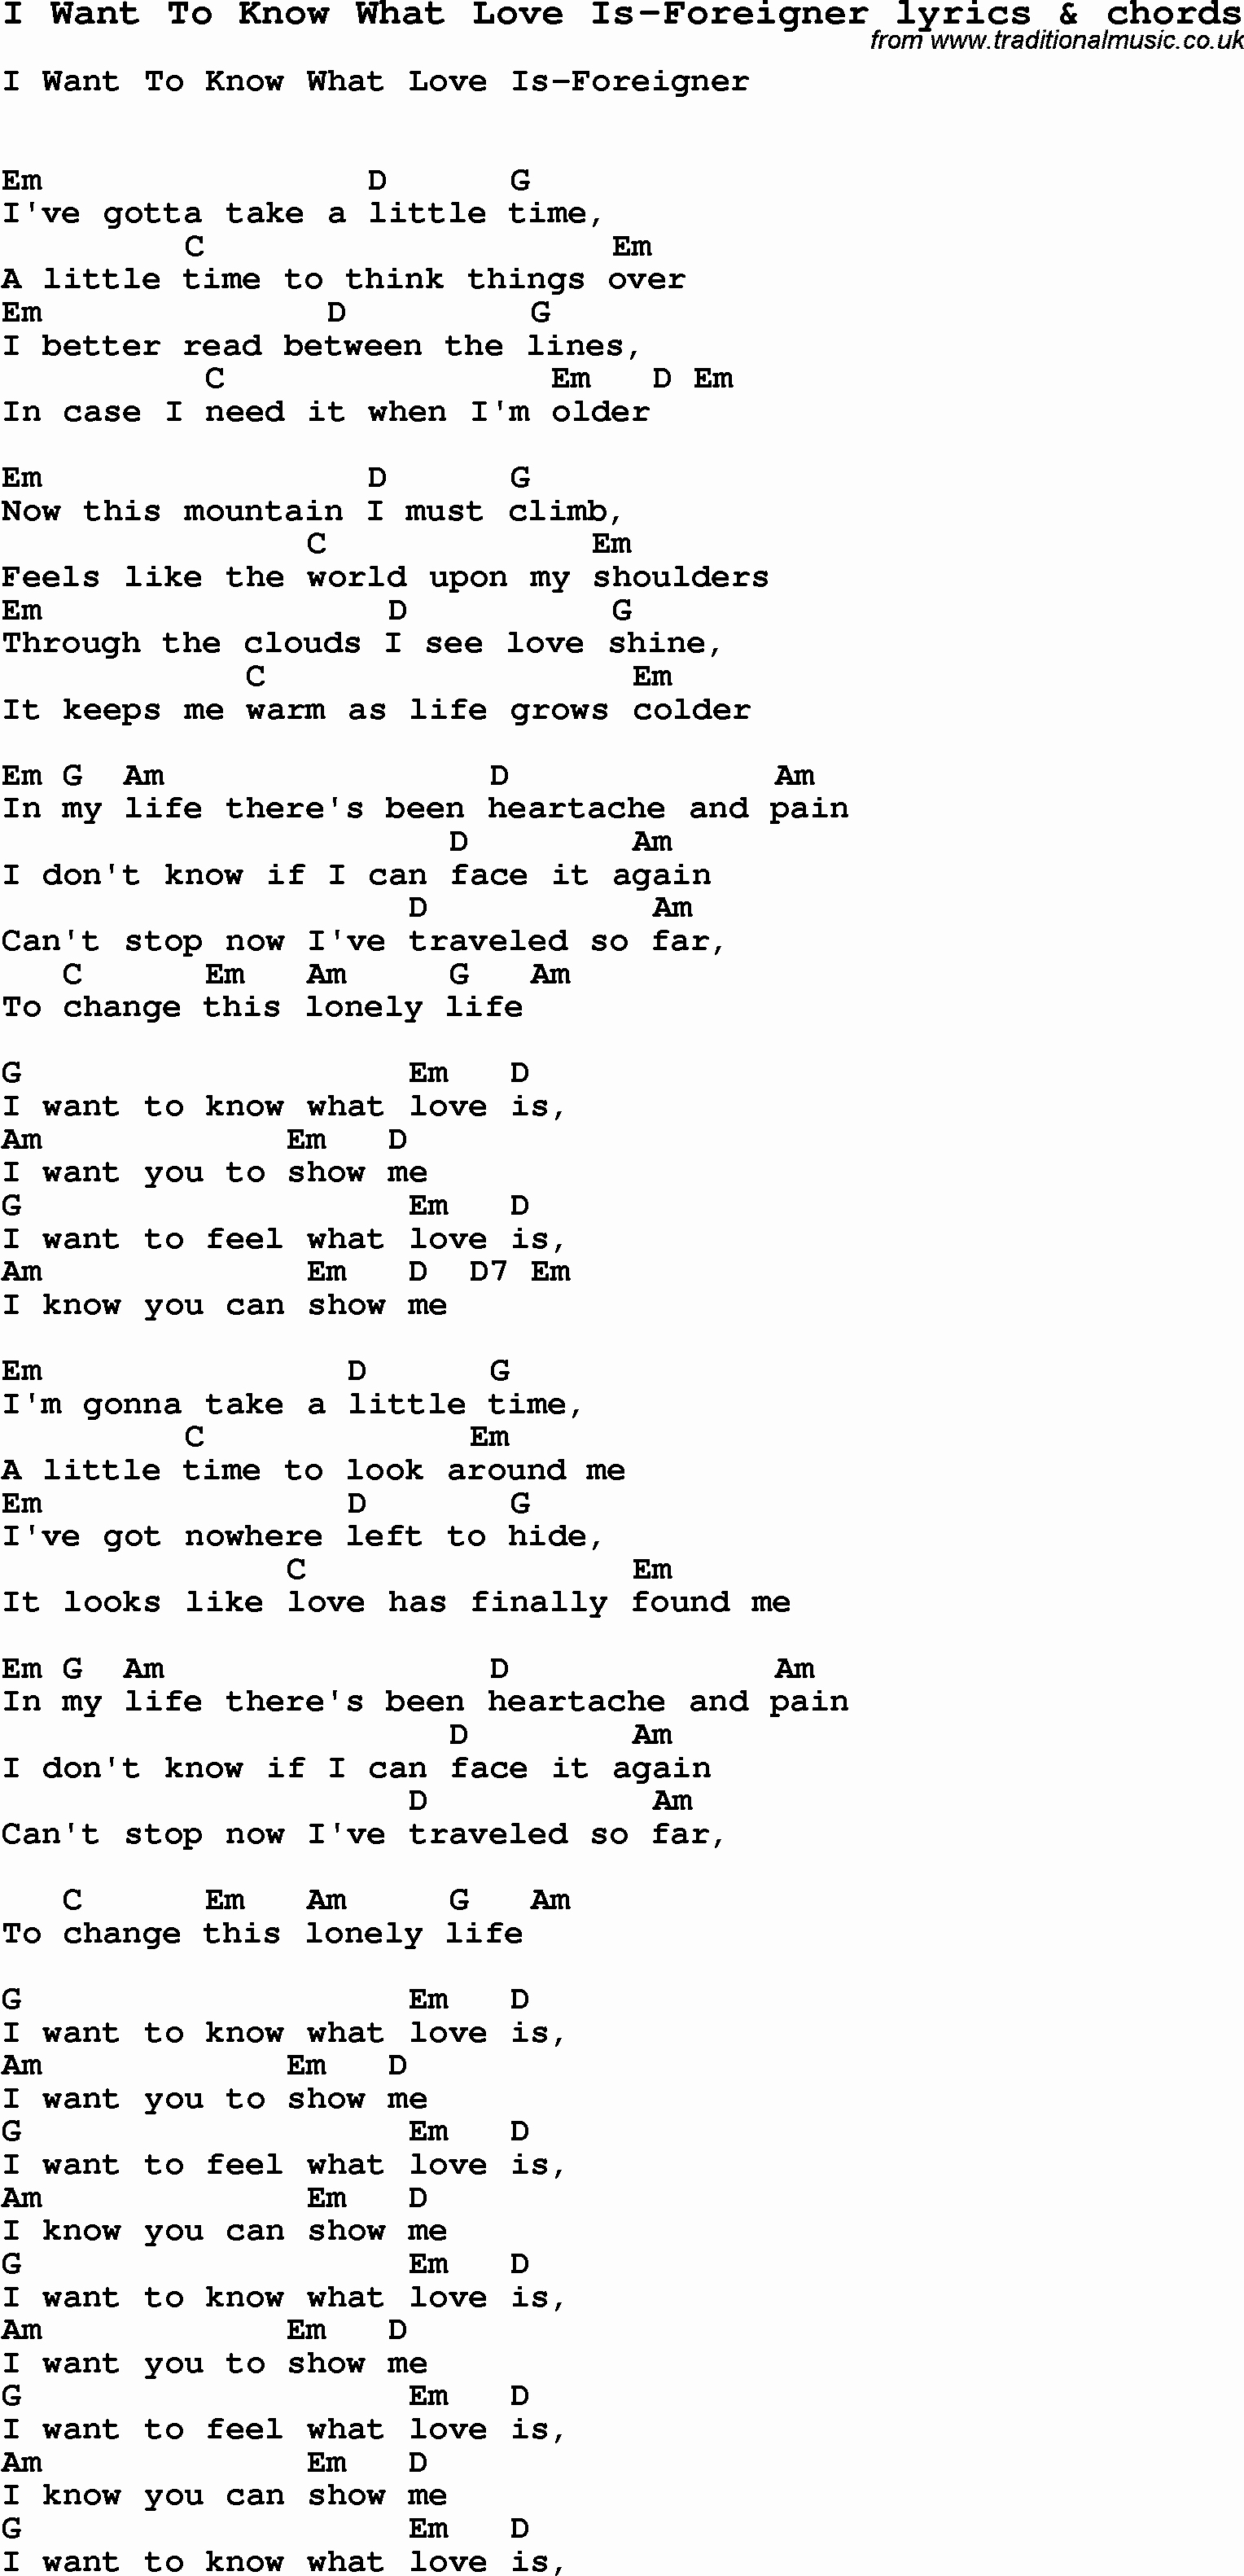 Hallelujah Ukulele Chords Hallelujah Ukulele Chords Beautiful Love Song Lyrics For I Want To